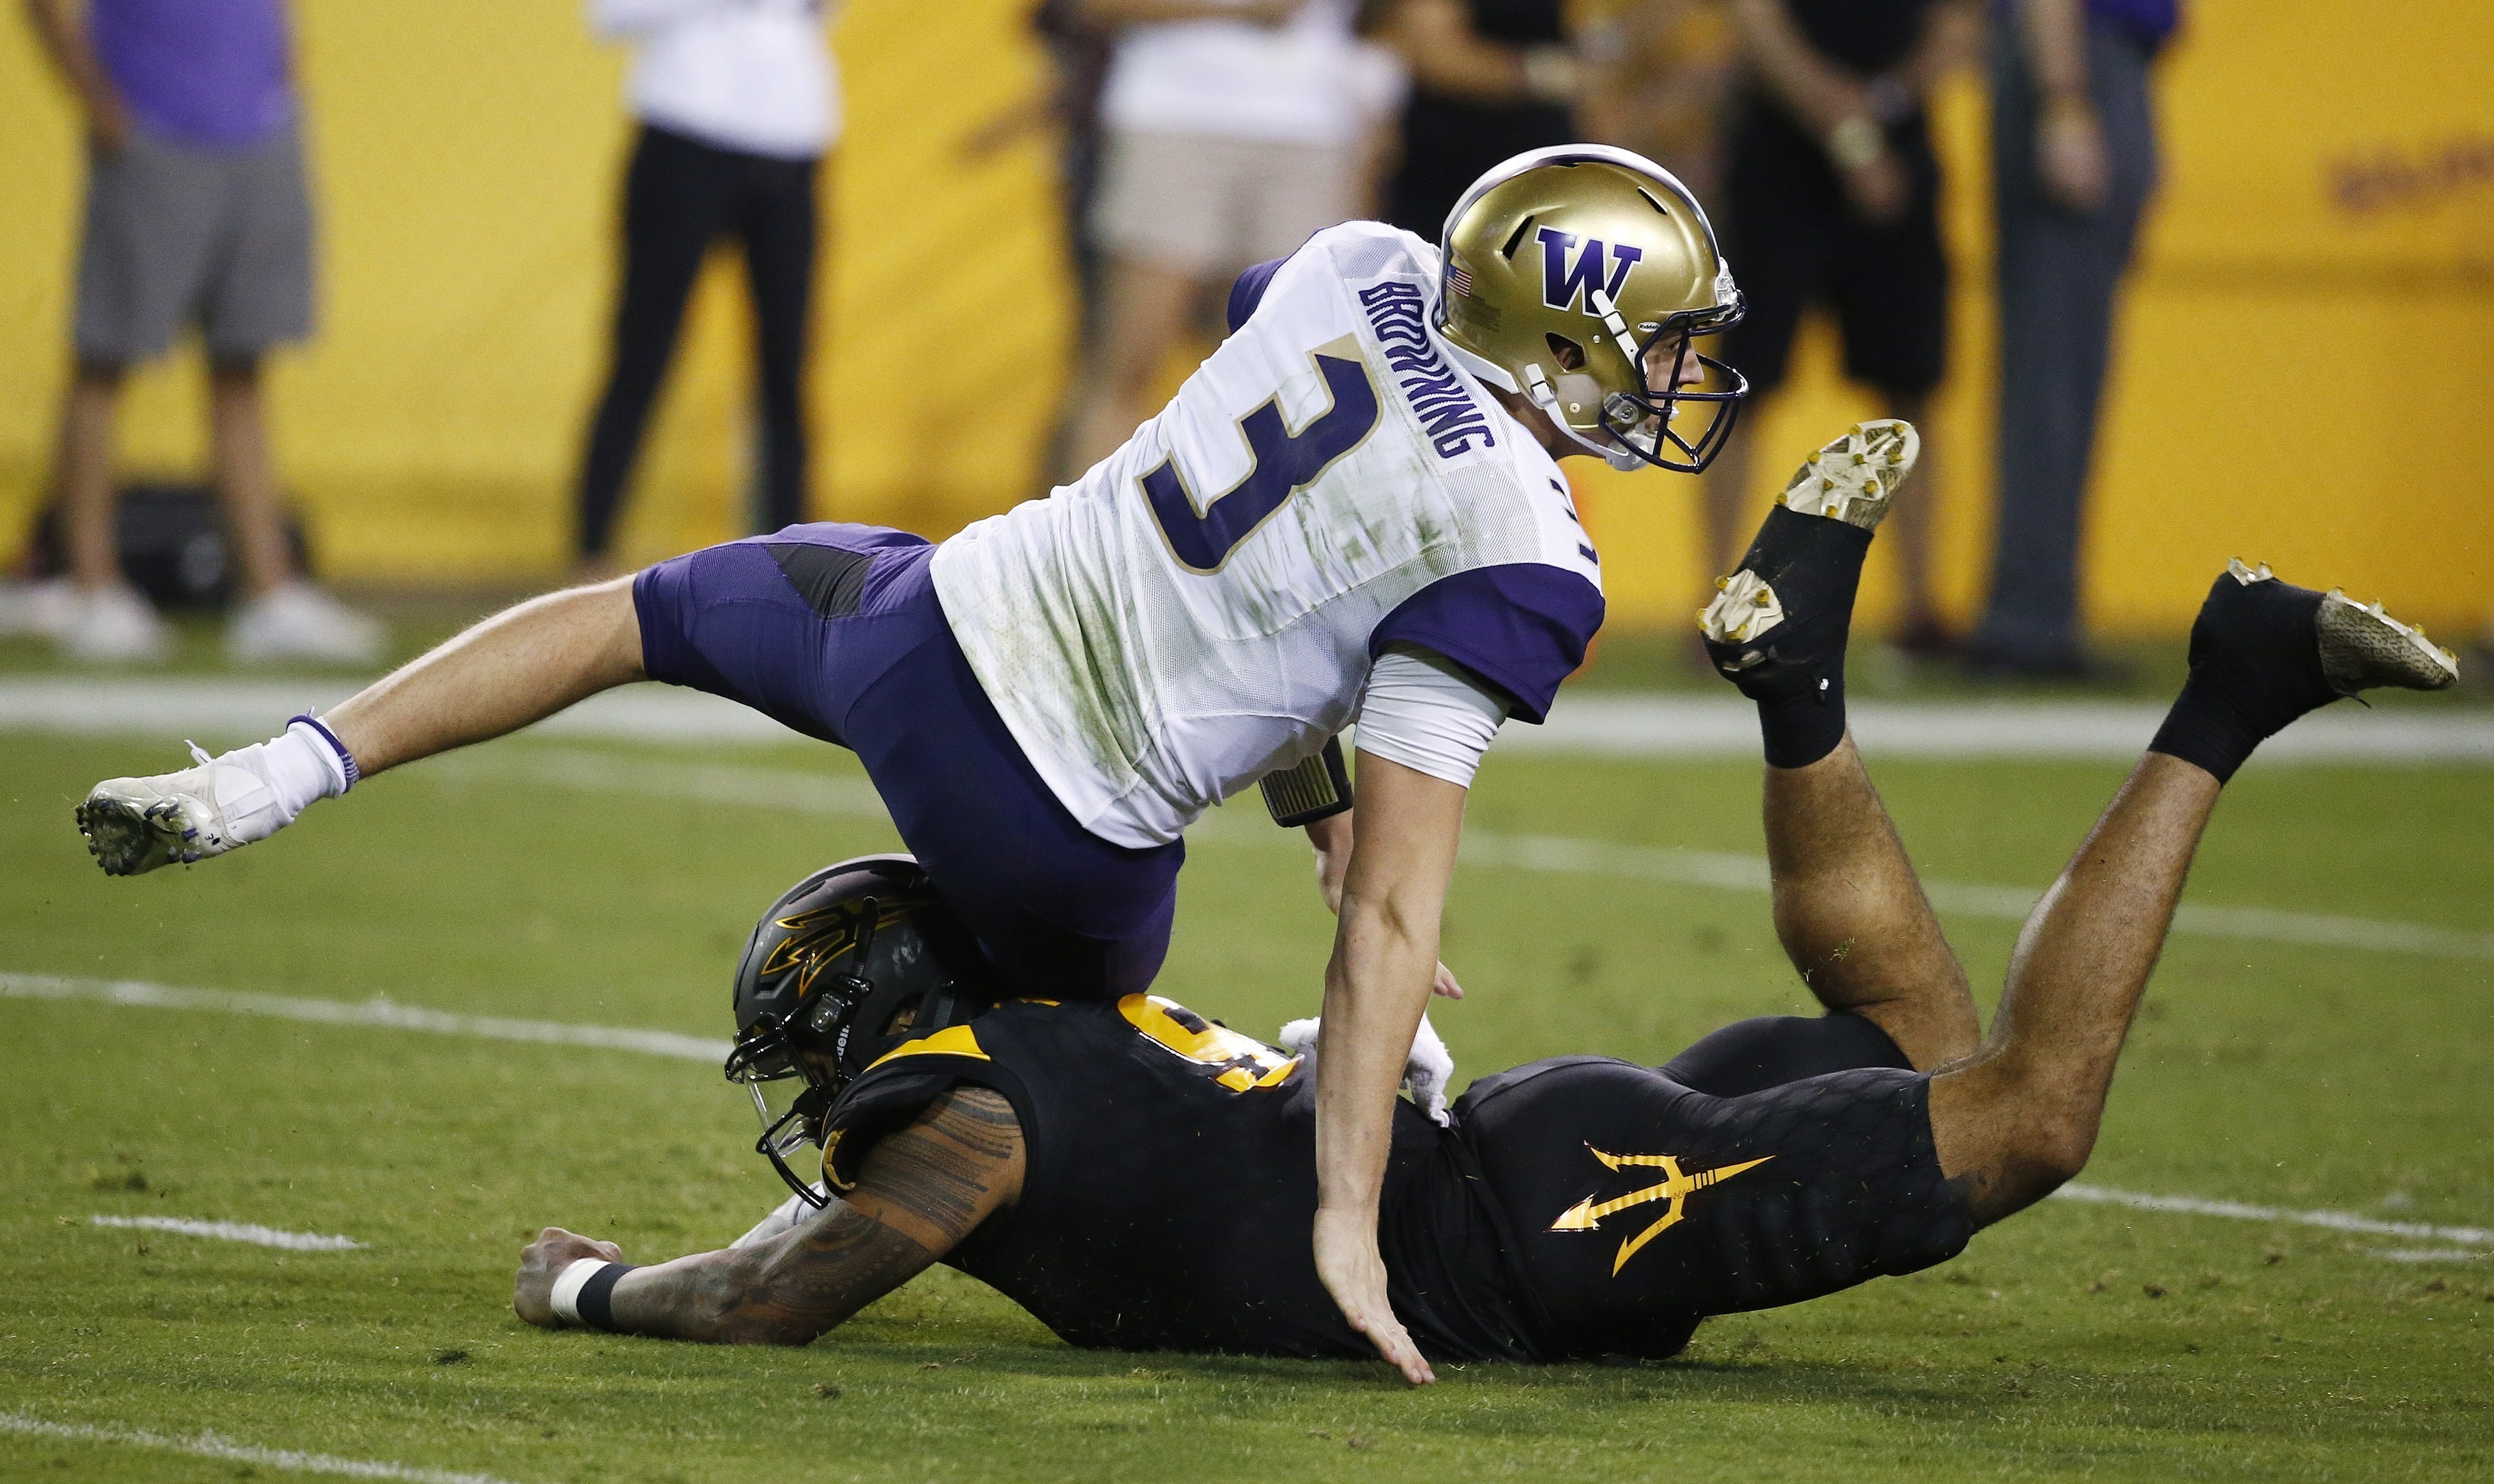 Washington quarterback Jake Browning (3) gets taken down by Arizona State's Jay Jay Wilson (9) during the first half of an NCAA college football game, Saturday, Oct. 14, 2017, in Tempe, Ariz. (AP Photo/Ross D. Franklin)